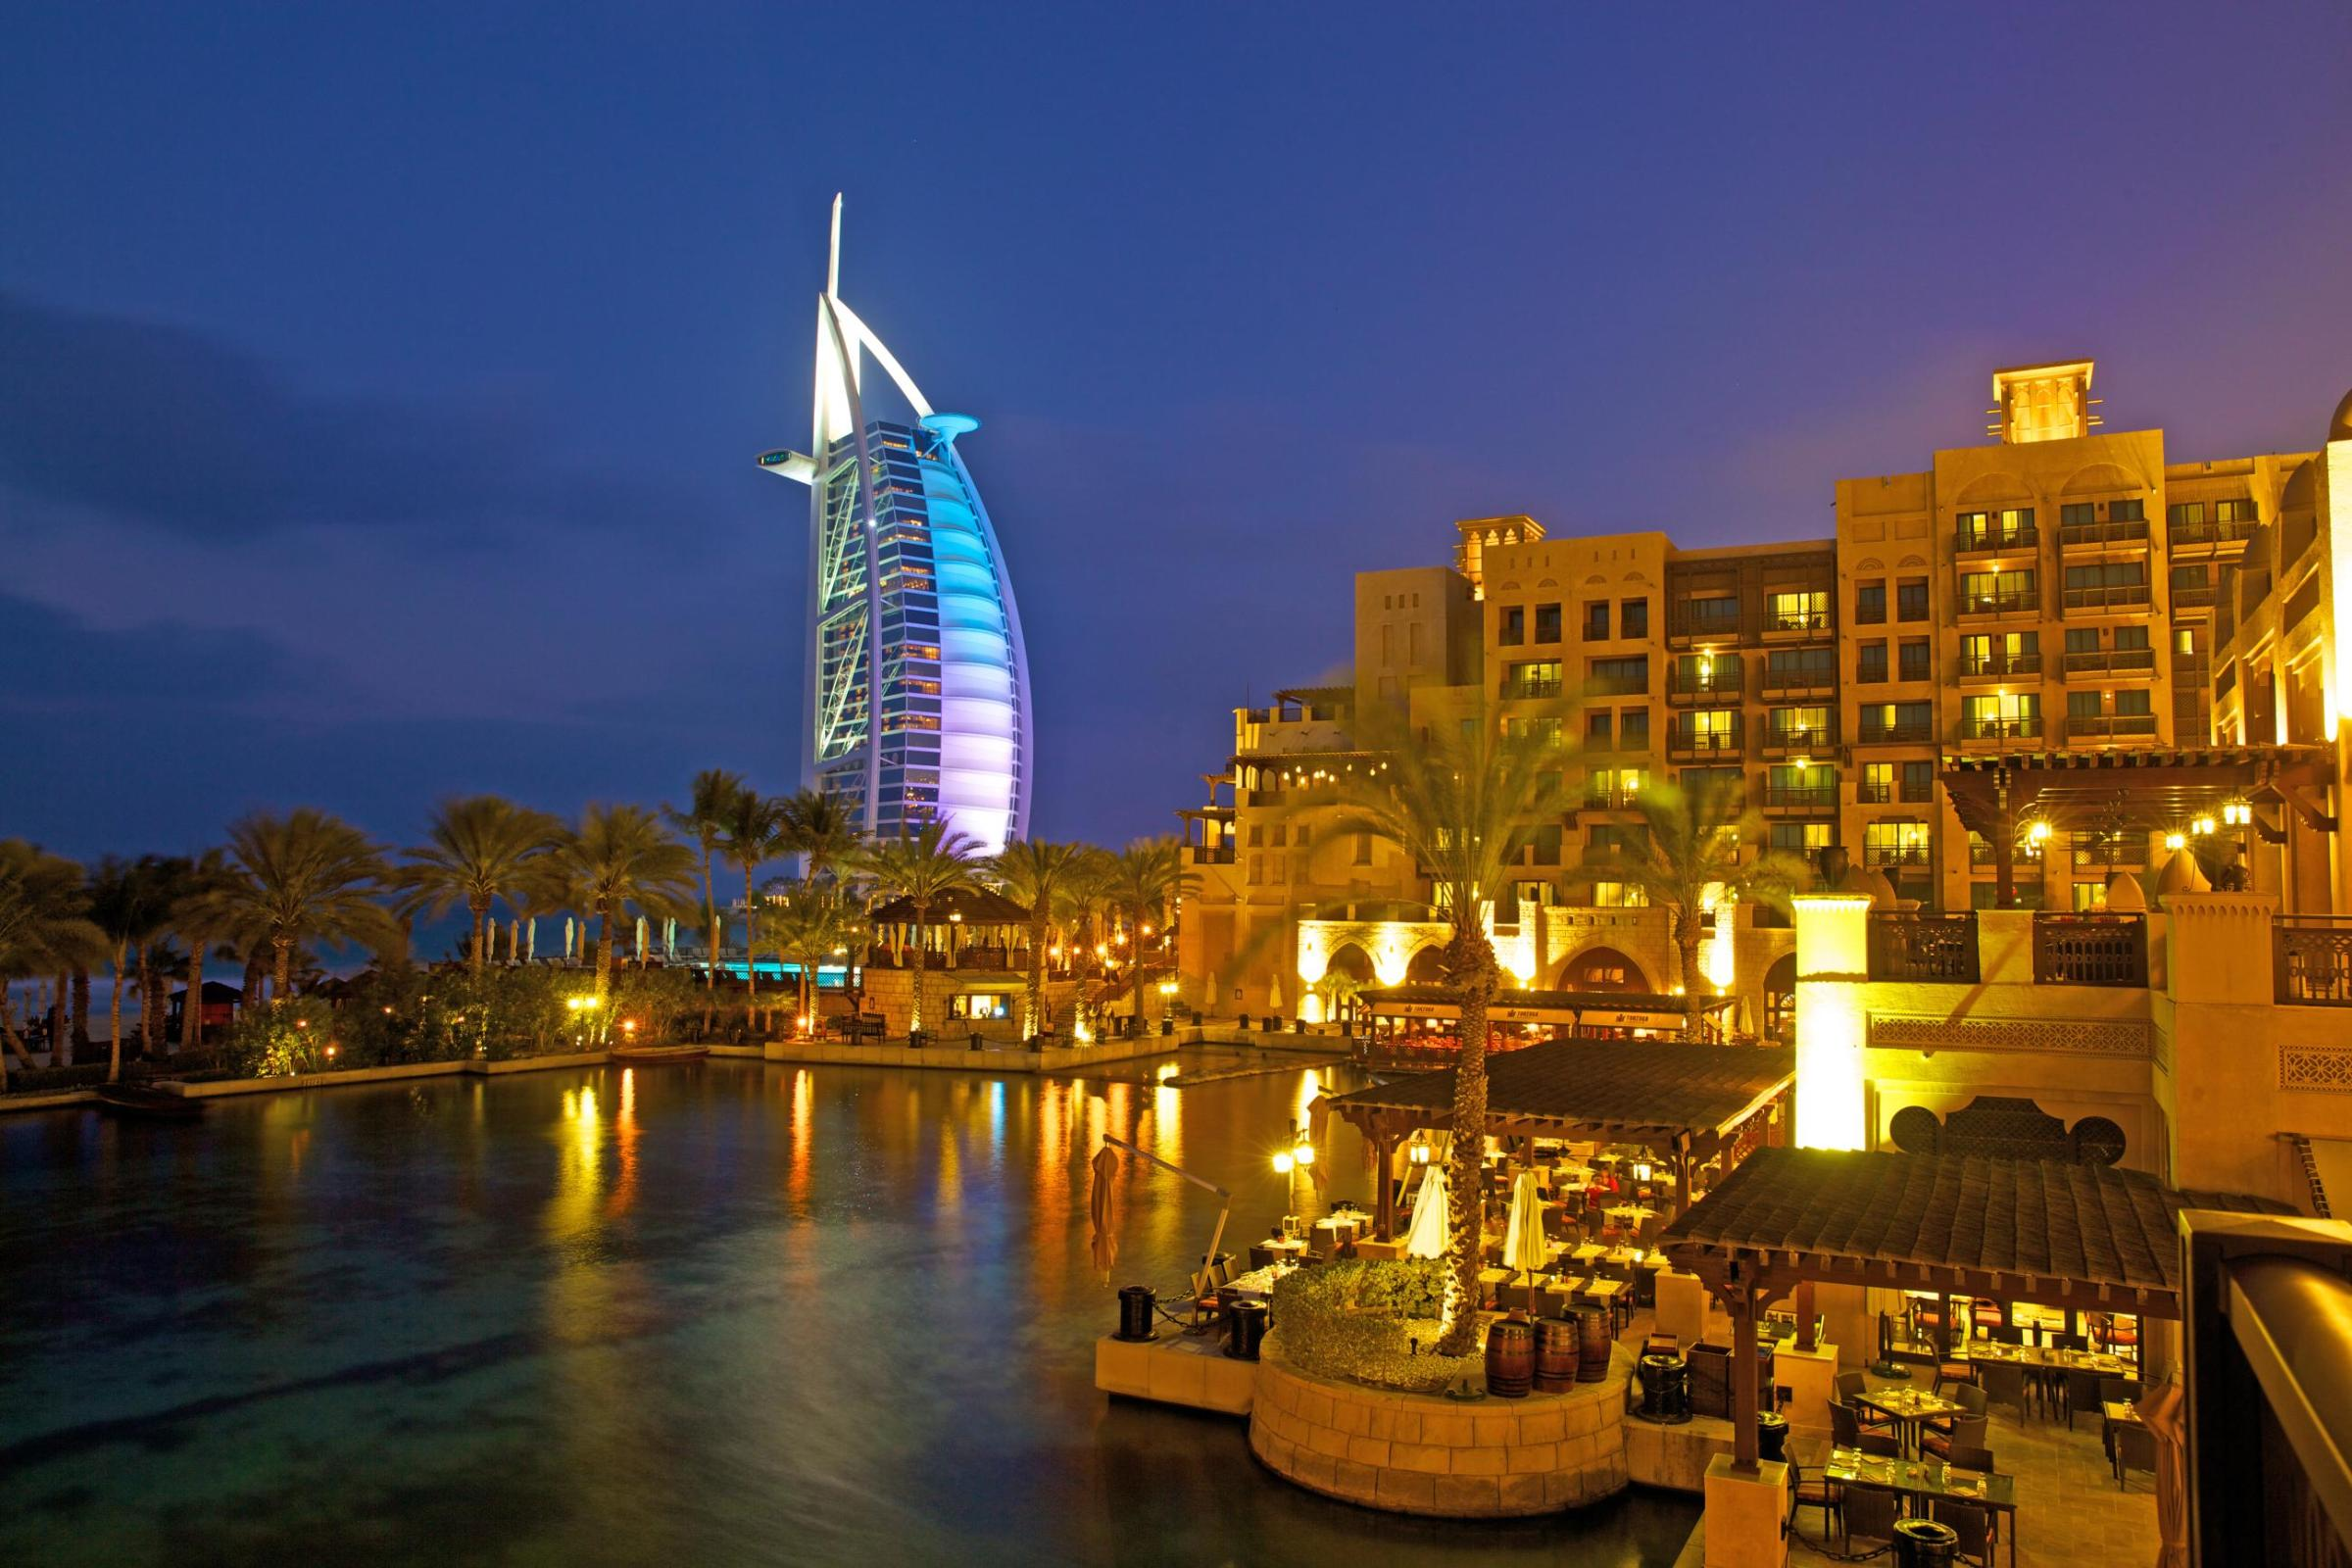 The Ultimate Dubai Travel Guide Bookingcom - 26 amazing photos that will make you want to visit dubai